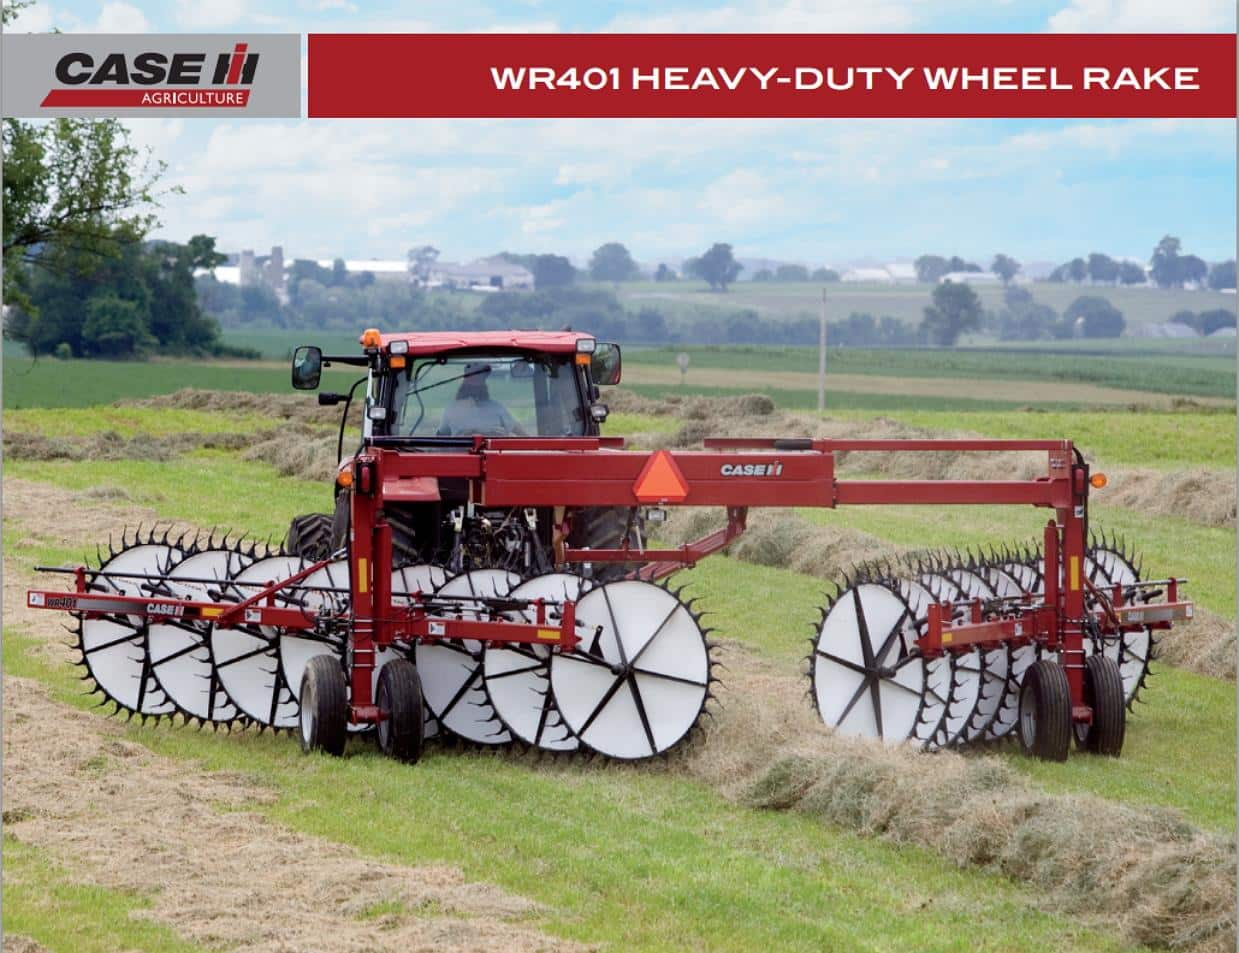 WR401 Heavy-Duty Wheel Rake Spec Sheet